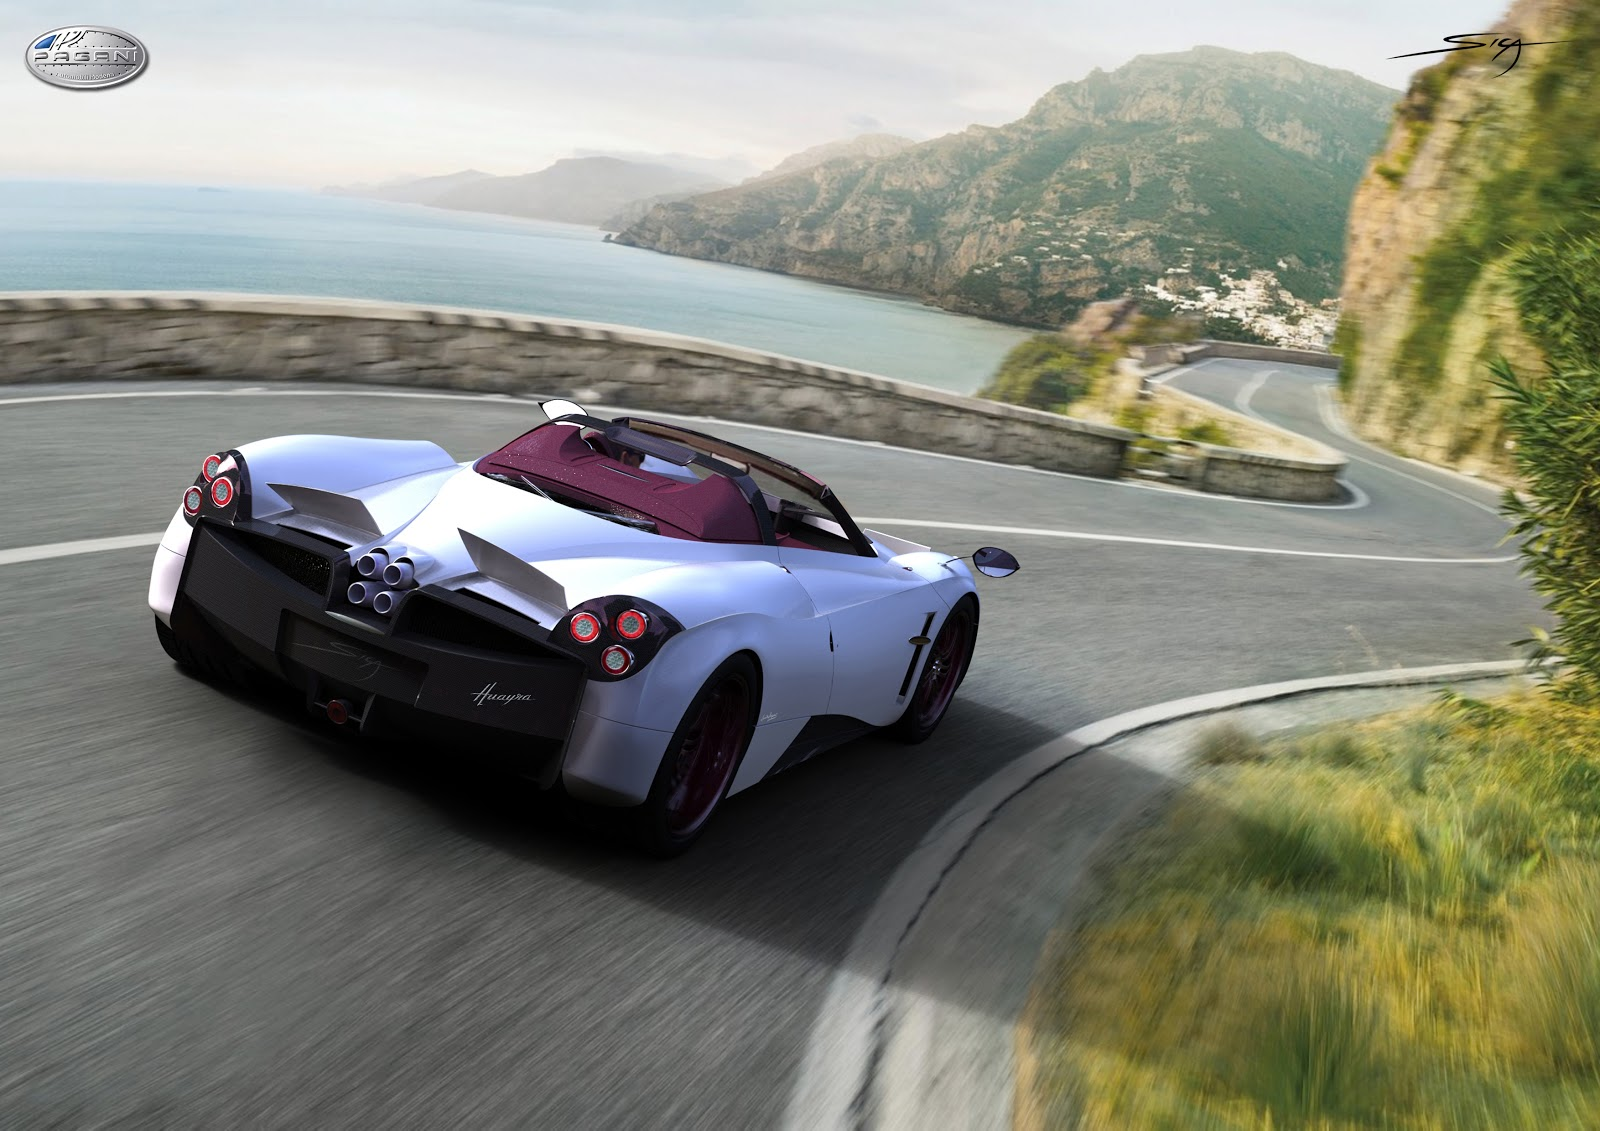 Pagani Huayra Roadster To Arrive By 2017 80324on Ford Focus Rs 500 Engine